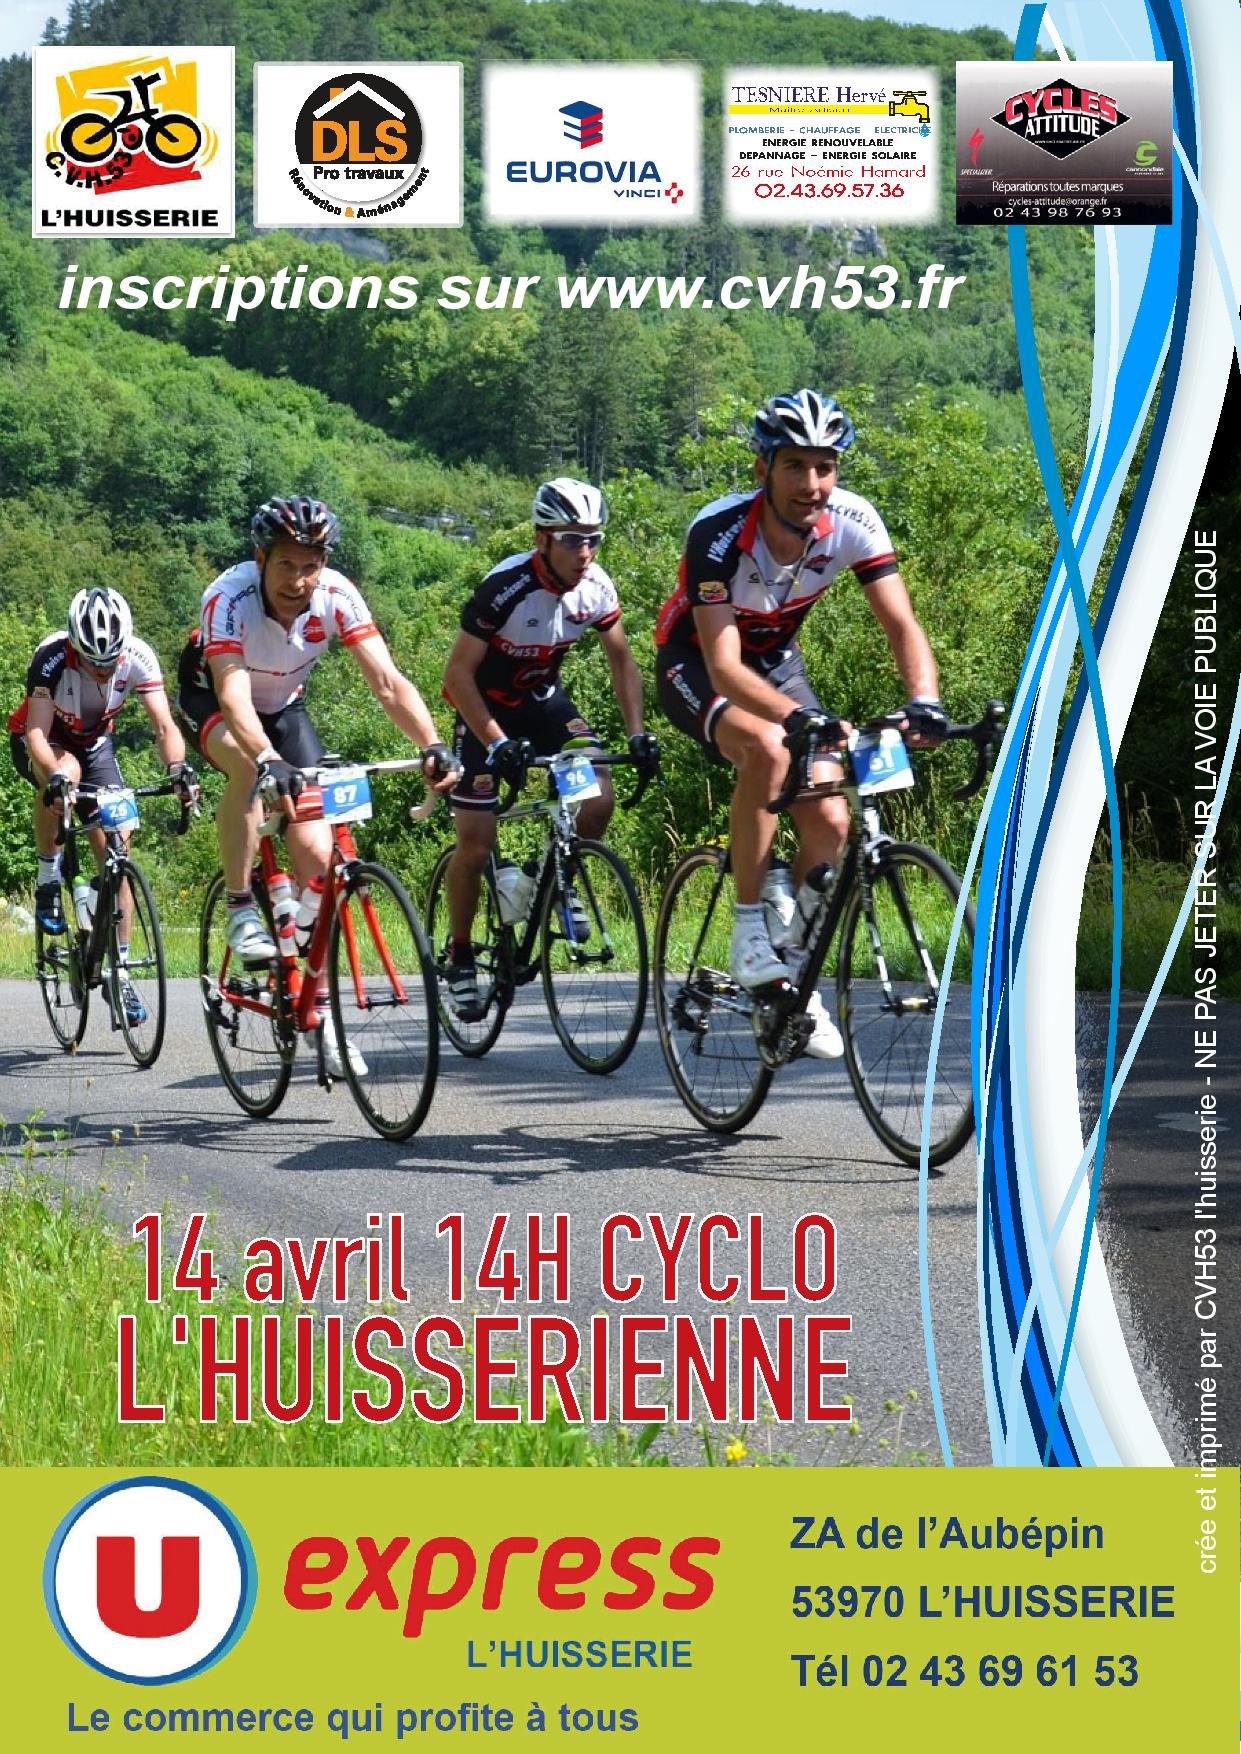 AFFICHE CVH CYCLO 2018-page-001.jpg